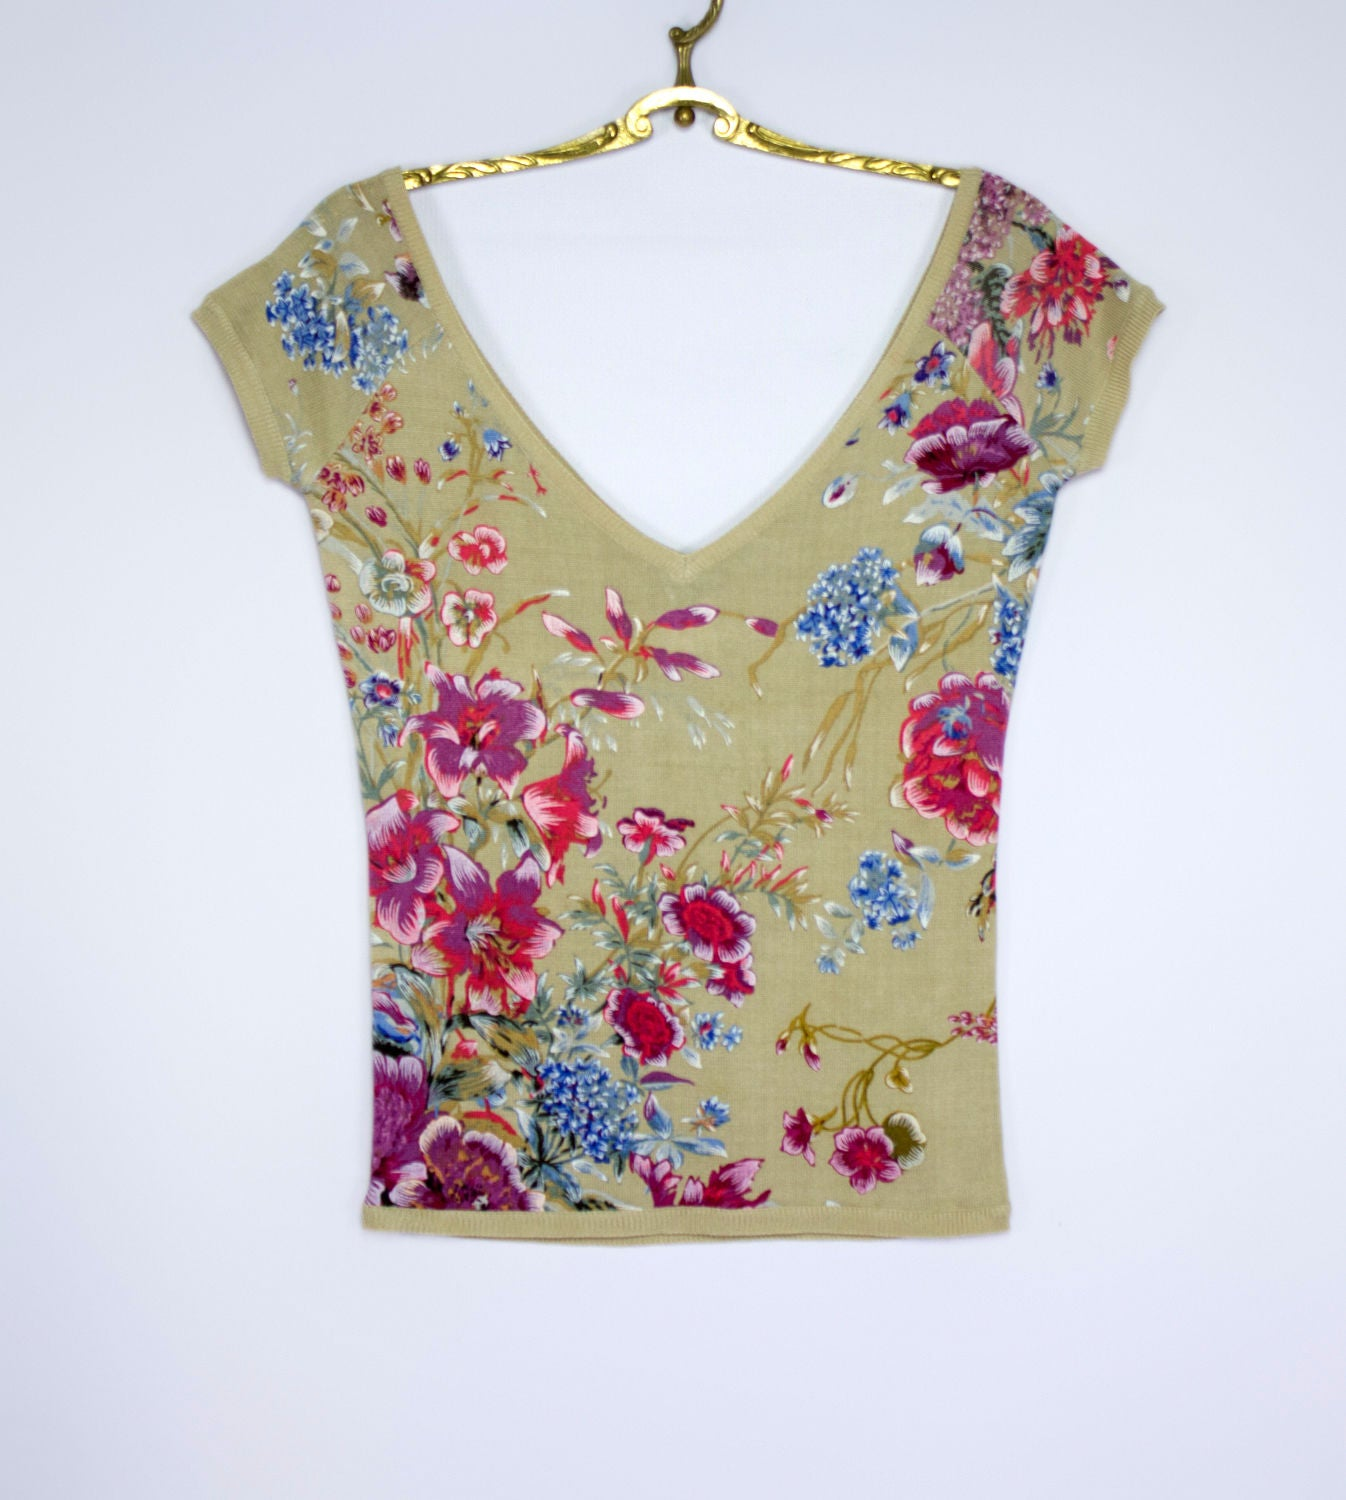 RENATO NUCCI women's Knitted 100% Silk Floral V-Neck Blouse/Top SIZE S - secondfirst